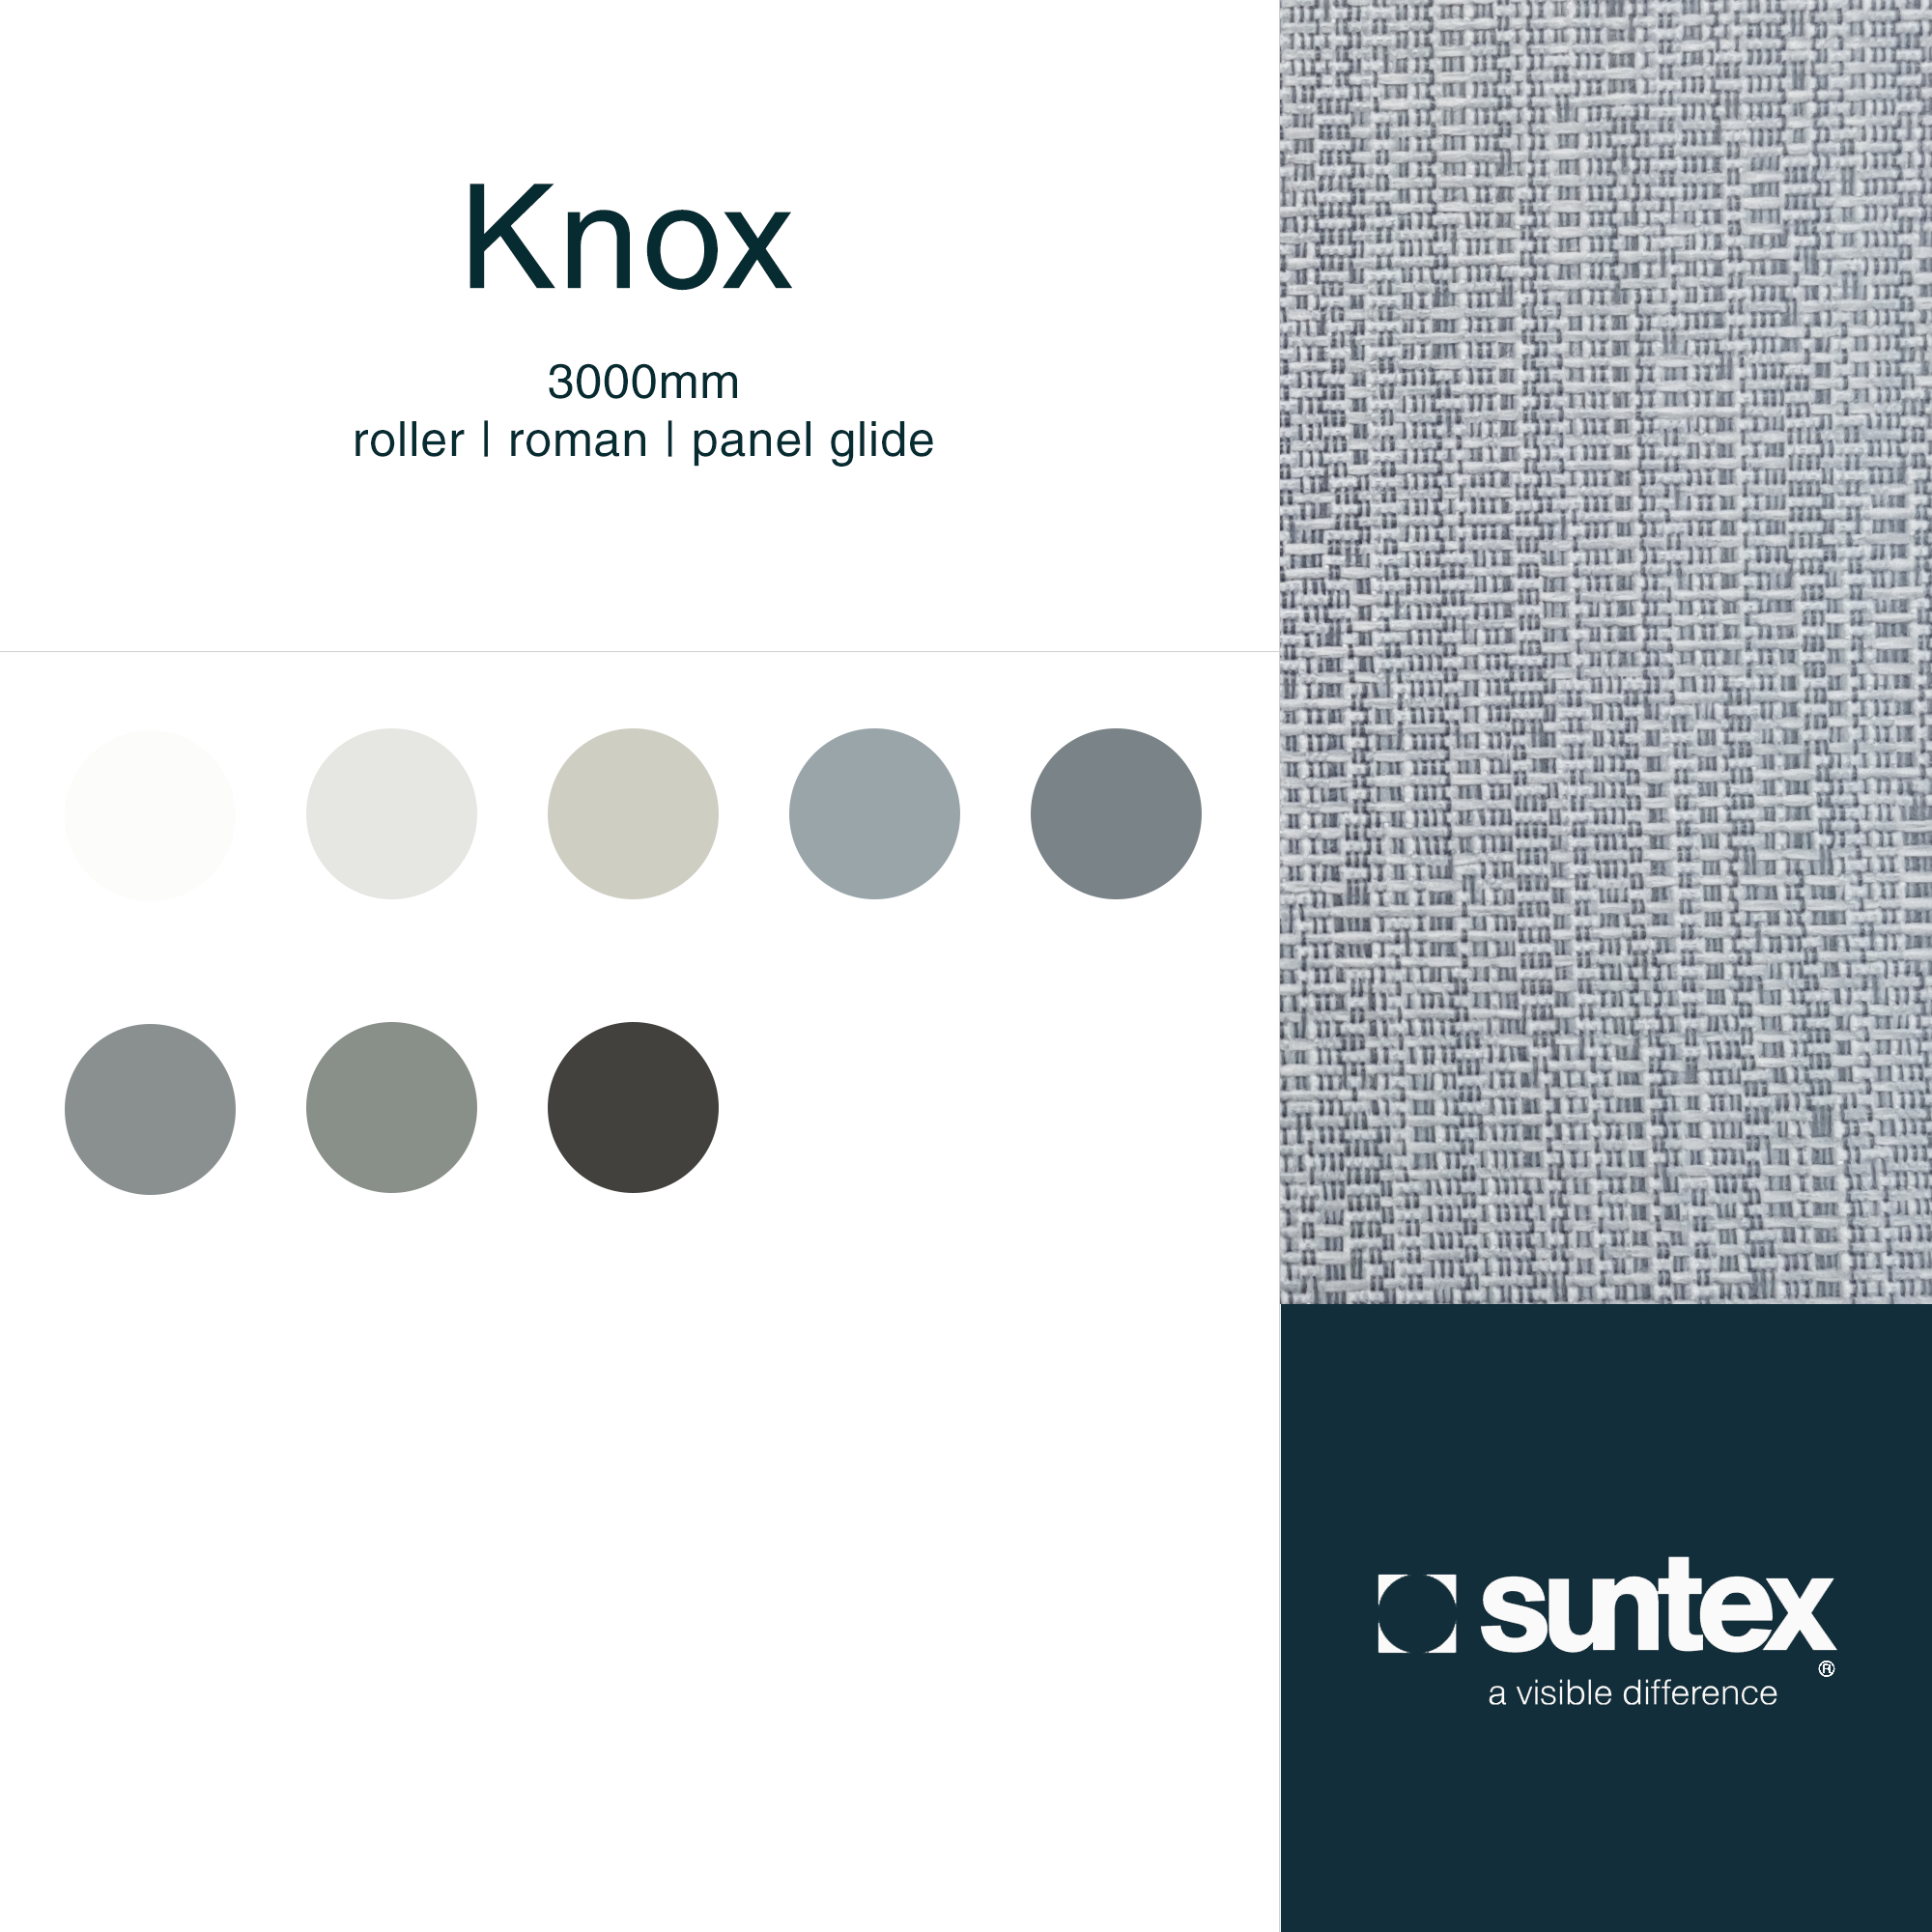 Knox Technical Information